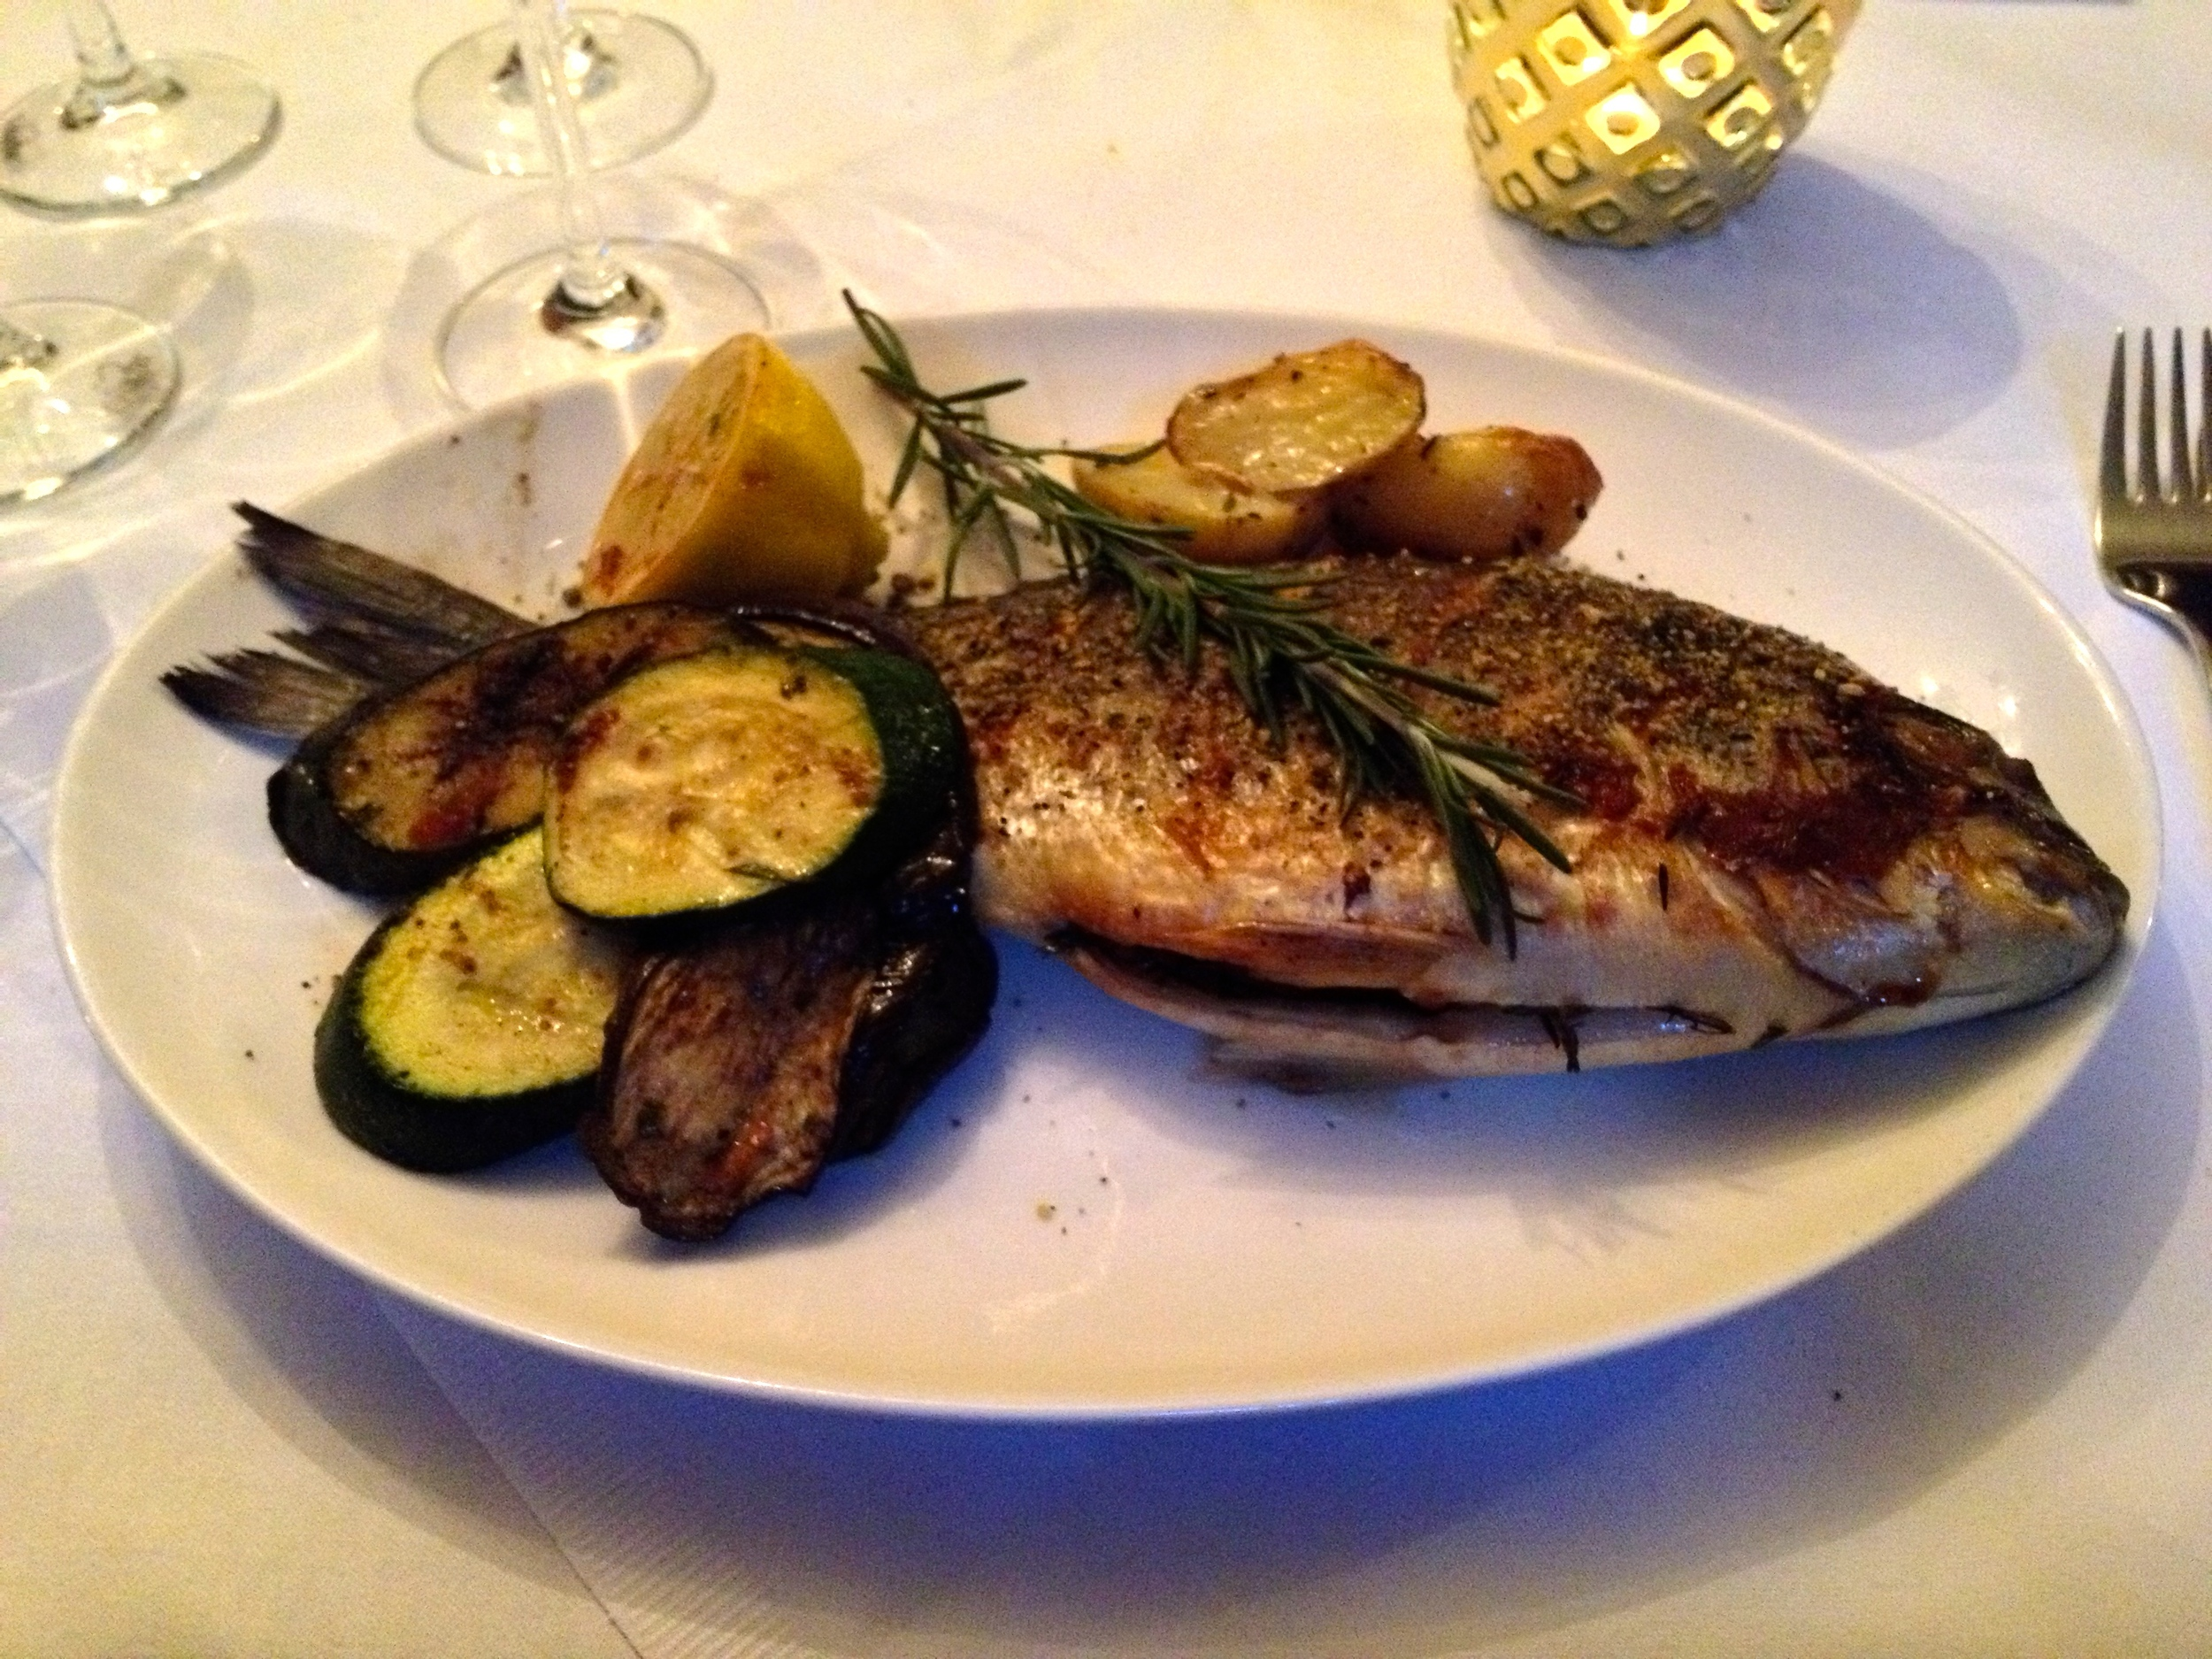 Grilled dorade with rosemary potatoes and grilled vegetables